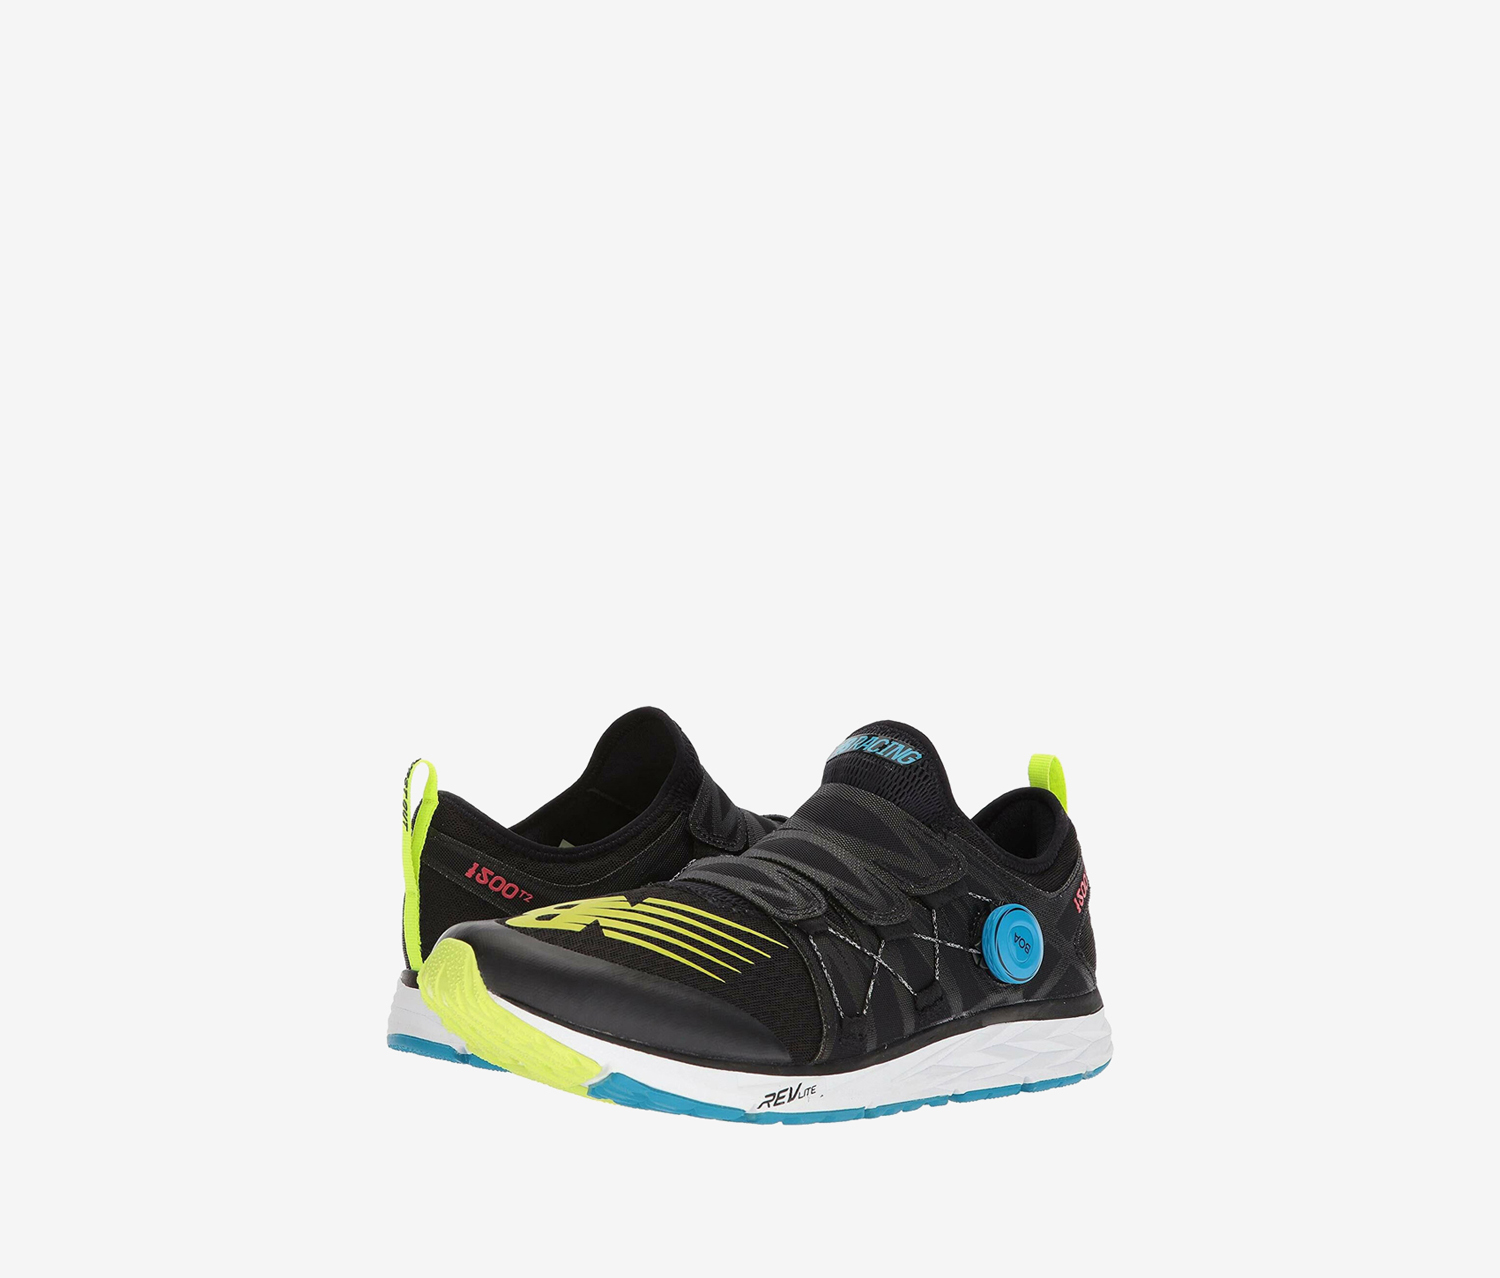 New Balance Men's Running Shoes, Black